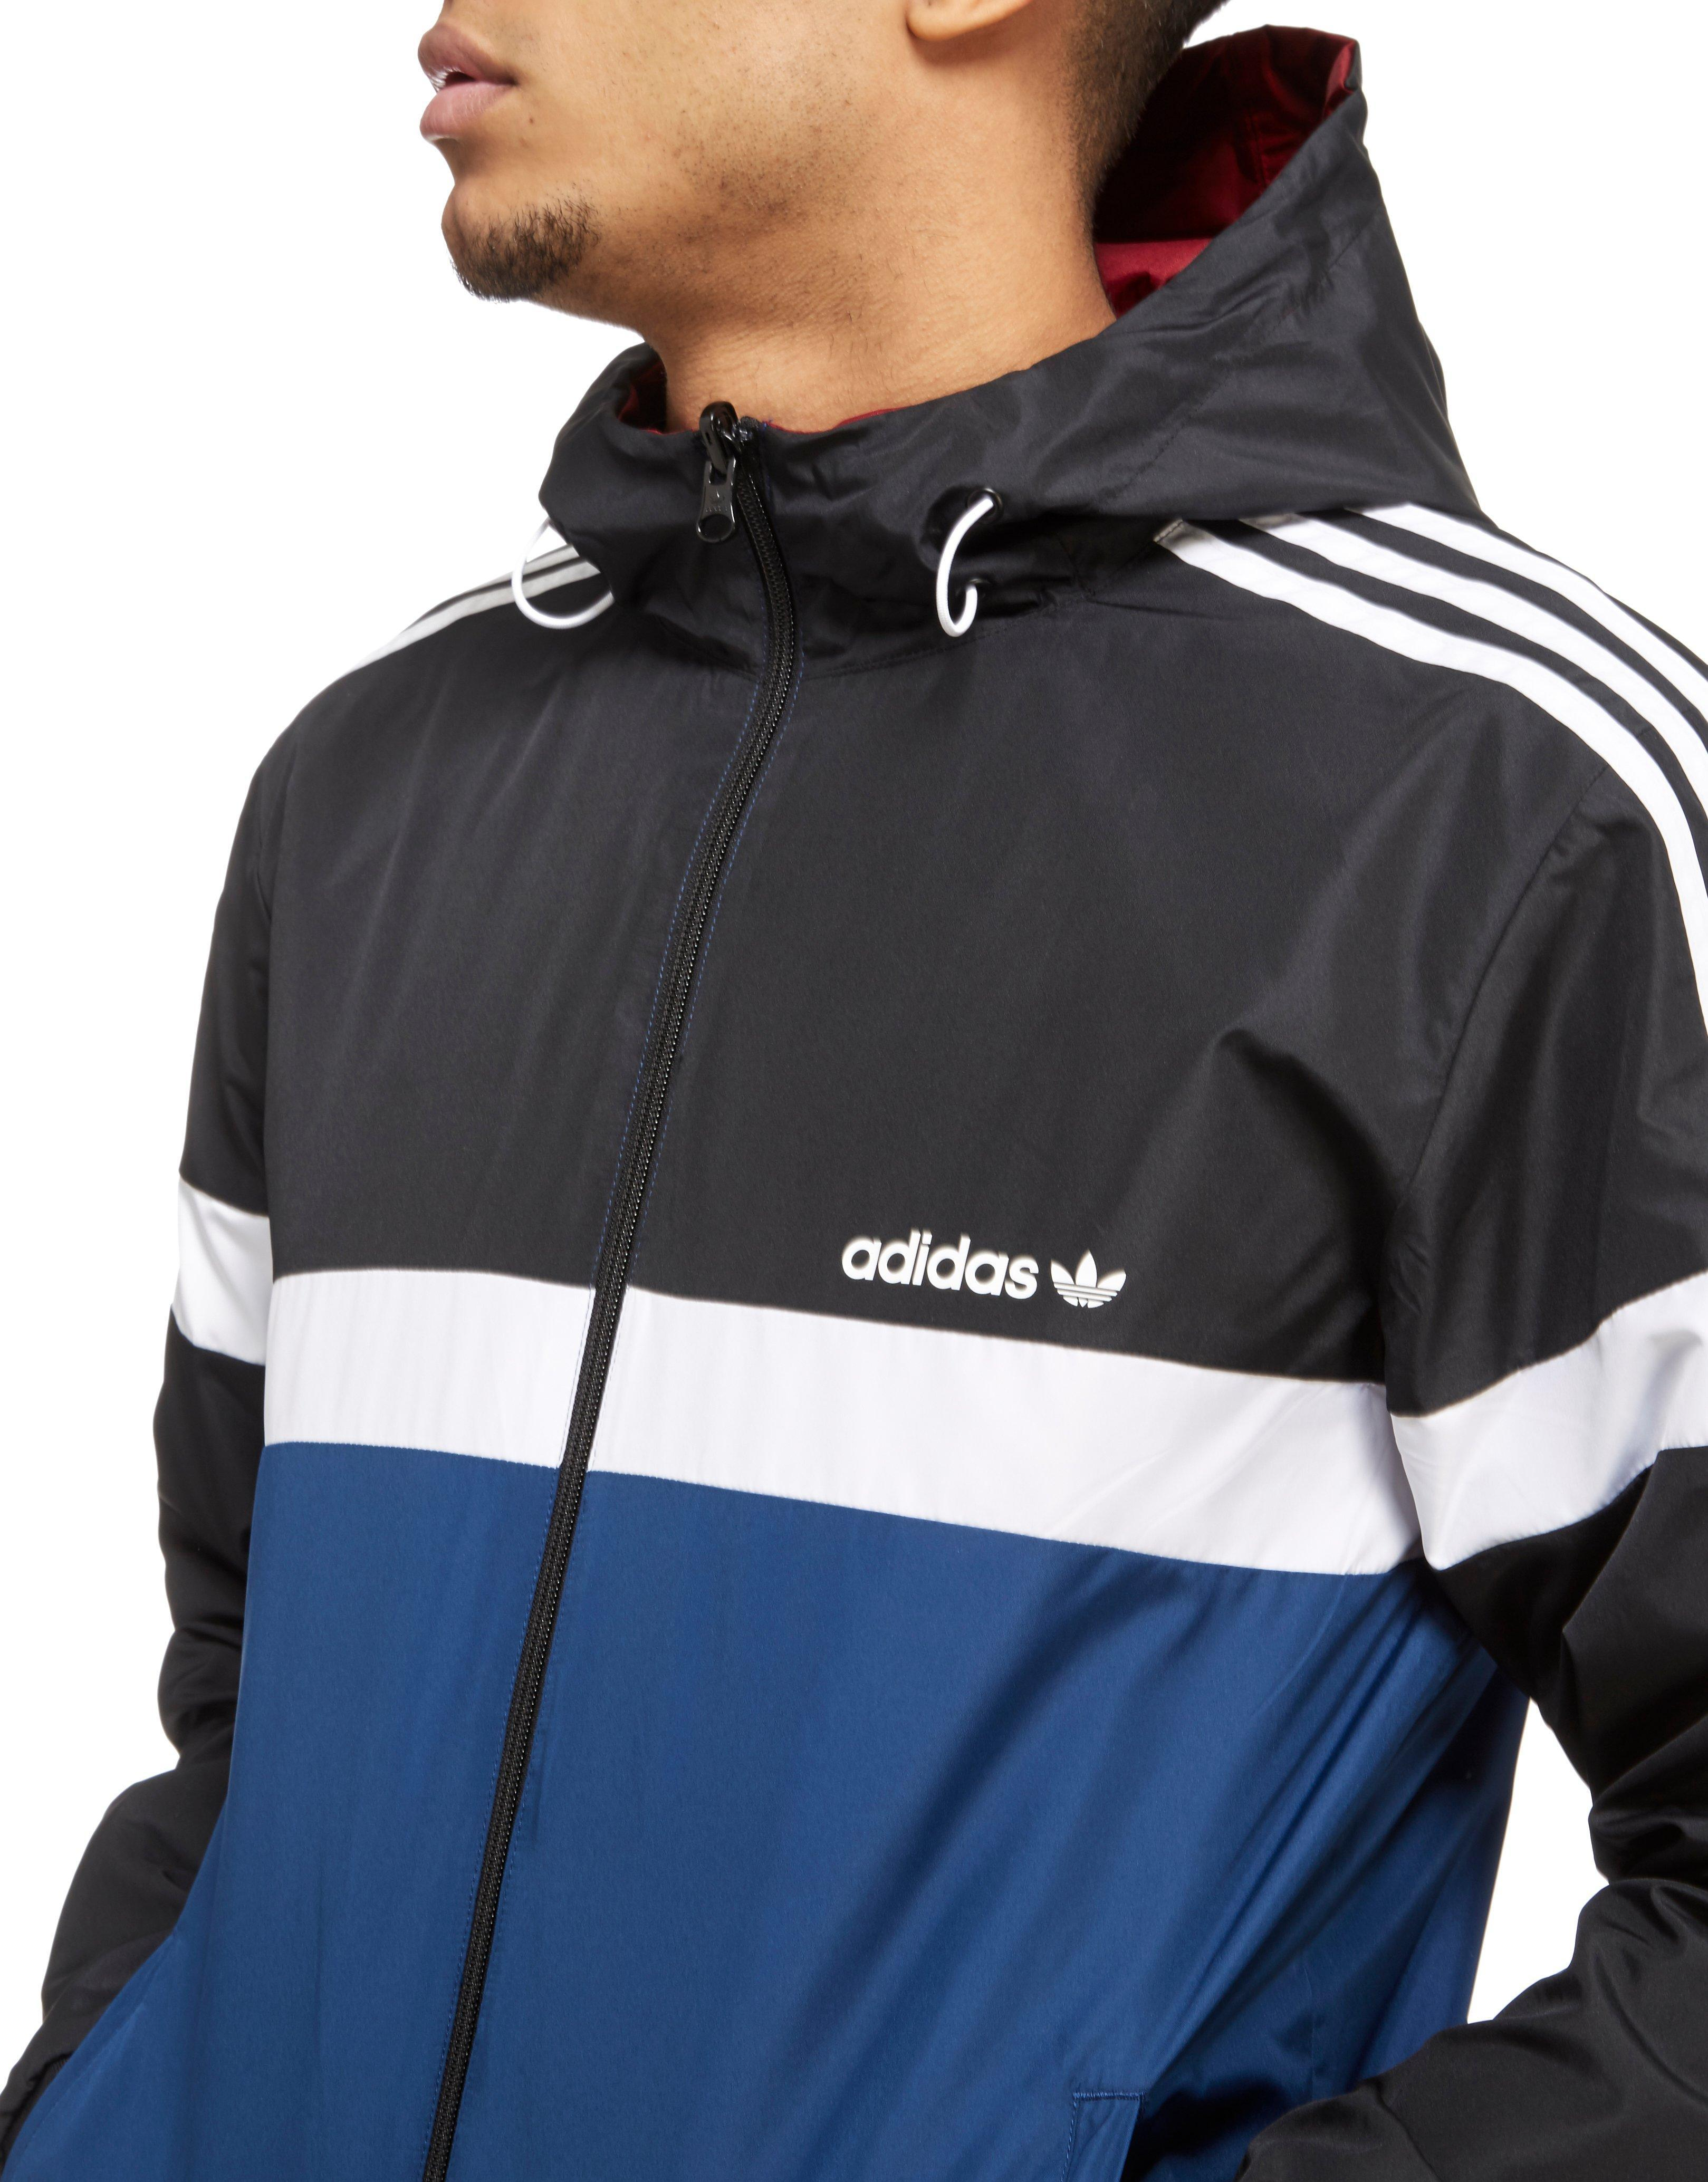 100% high quality where to buy sells Itasca Reversible Jacket